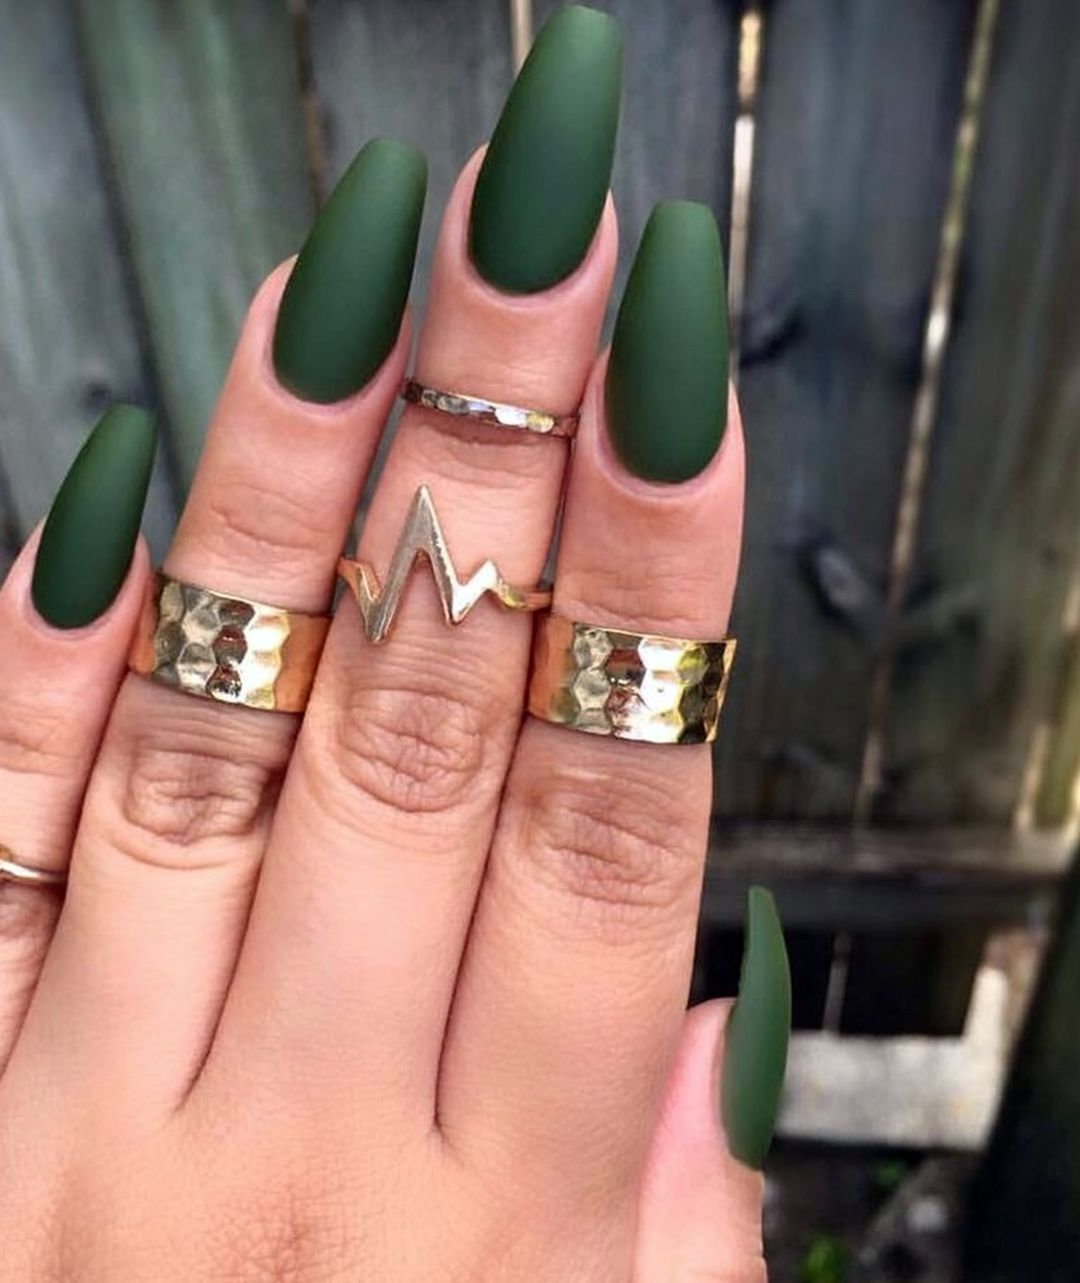 15 Cute And Trendy Green Coffin Nail Art Ideas Beautifulnailart Coffinnailartideas Nailar In 2020 Matte Olive Green Nails Green Acrylic Nails Olive Nails